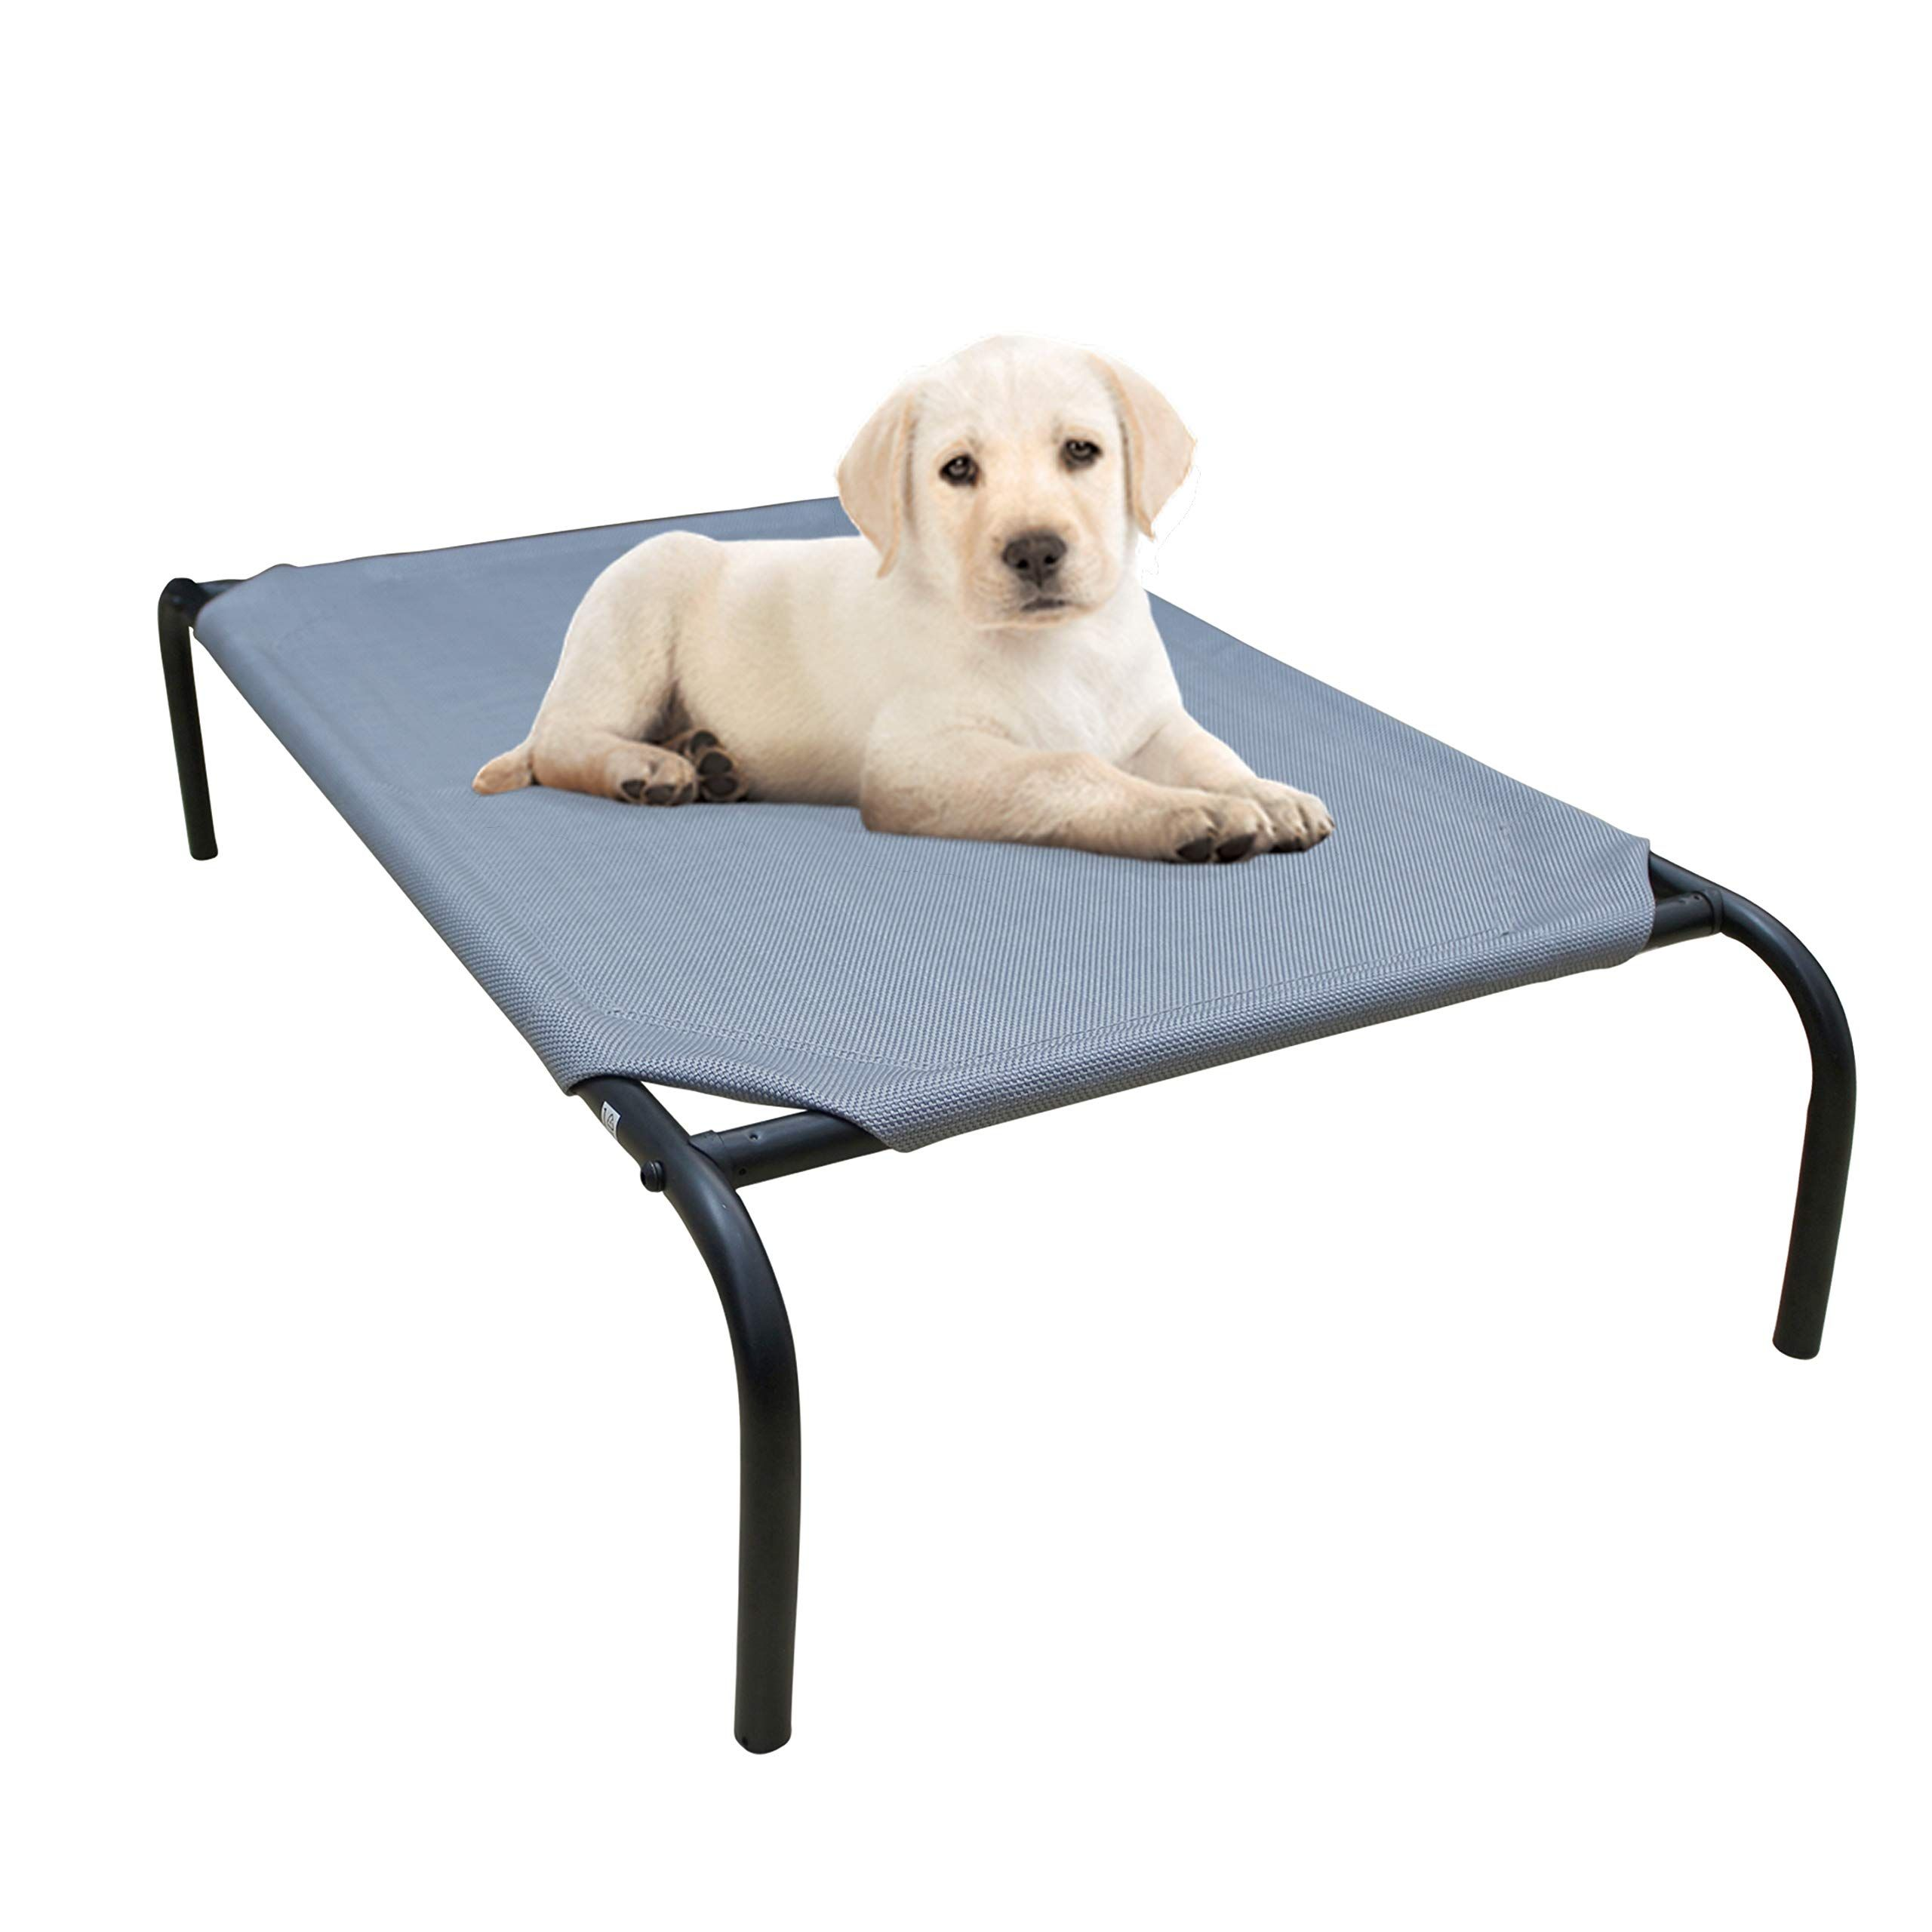 Phyex Steel Framed Portable Elevated Pet Bed Elevated Cooling Pet